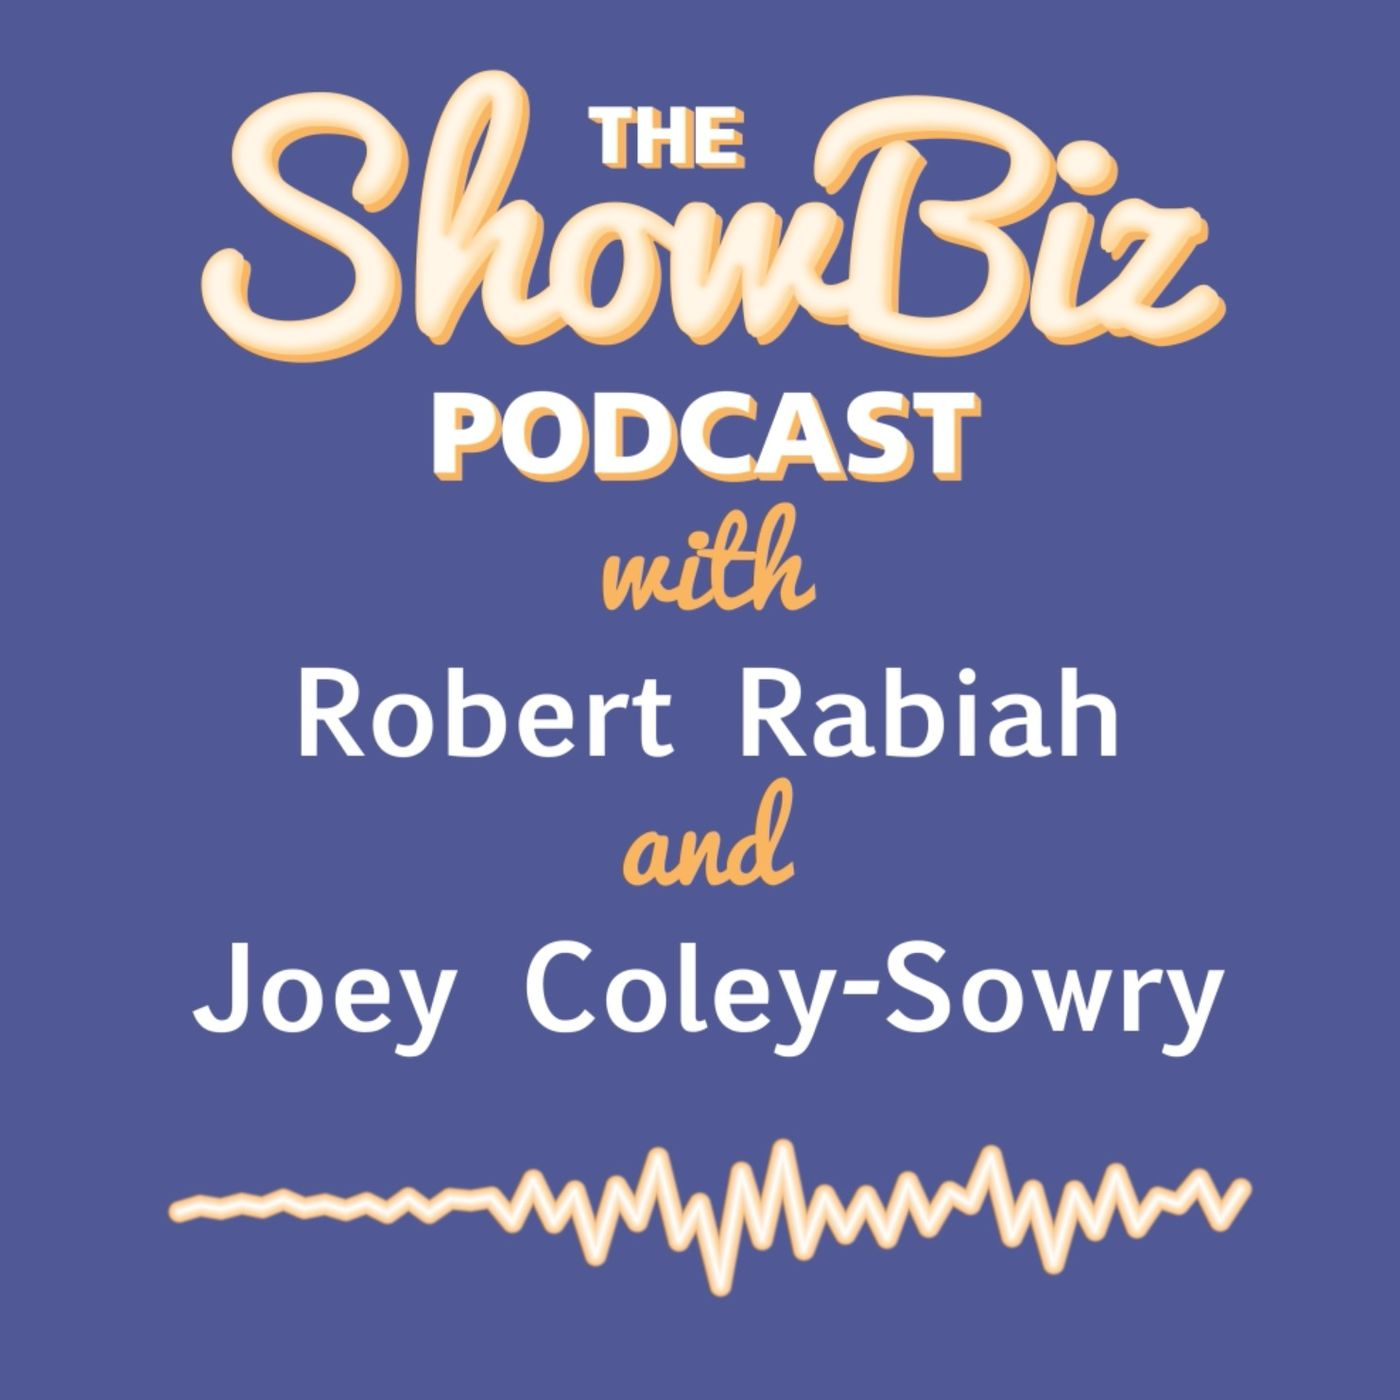 The ShowBiz Podcast with Robert Rabiah and Joey Coley-Sowry - Trailer 1